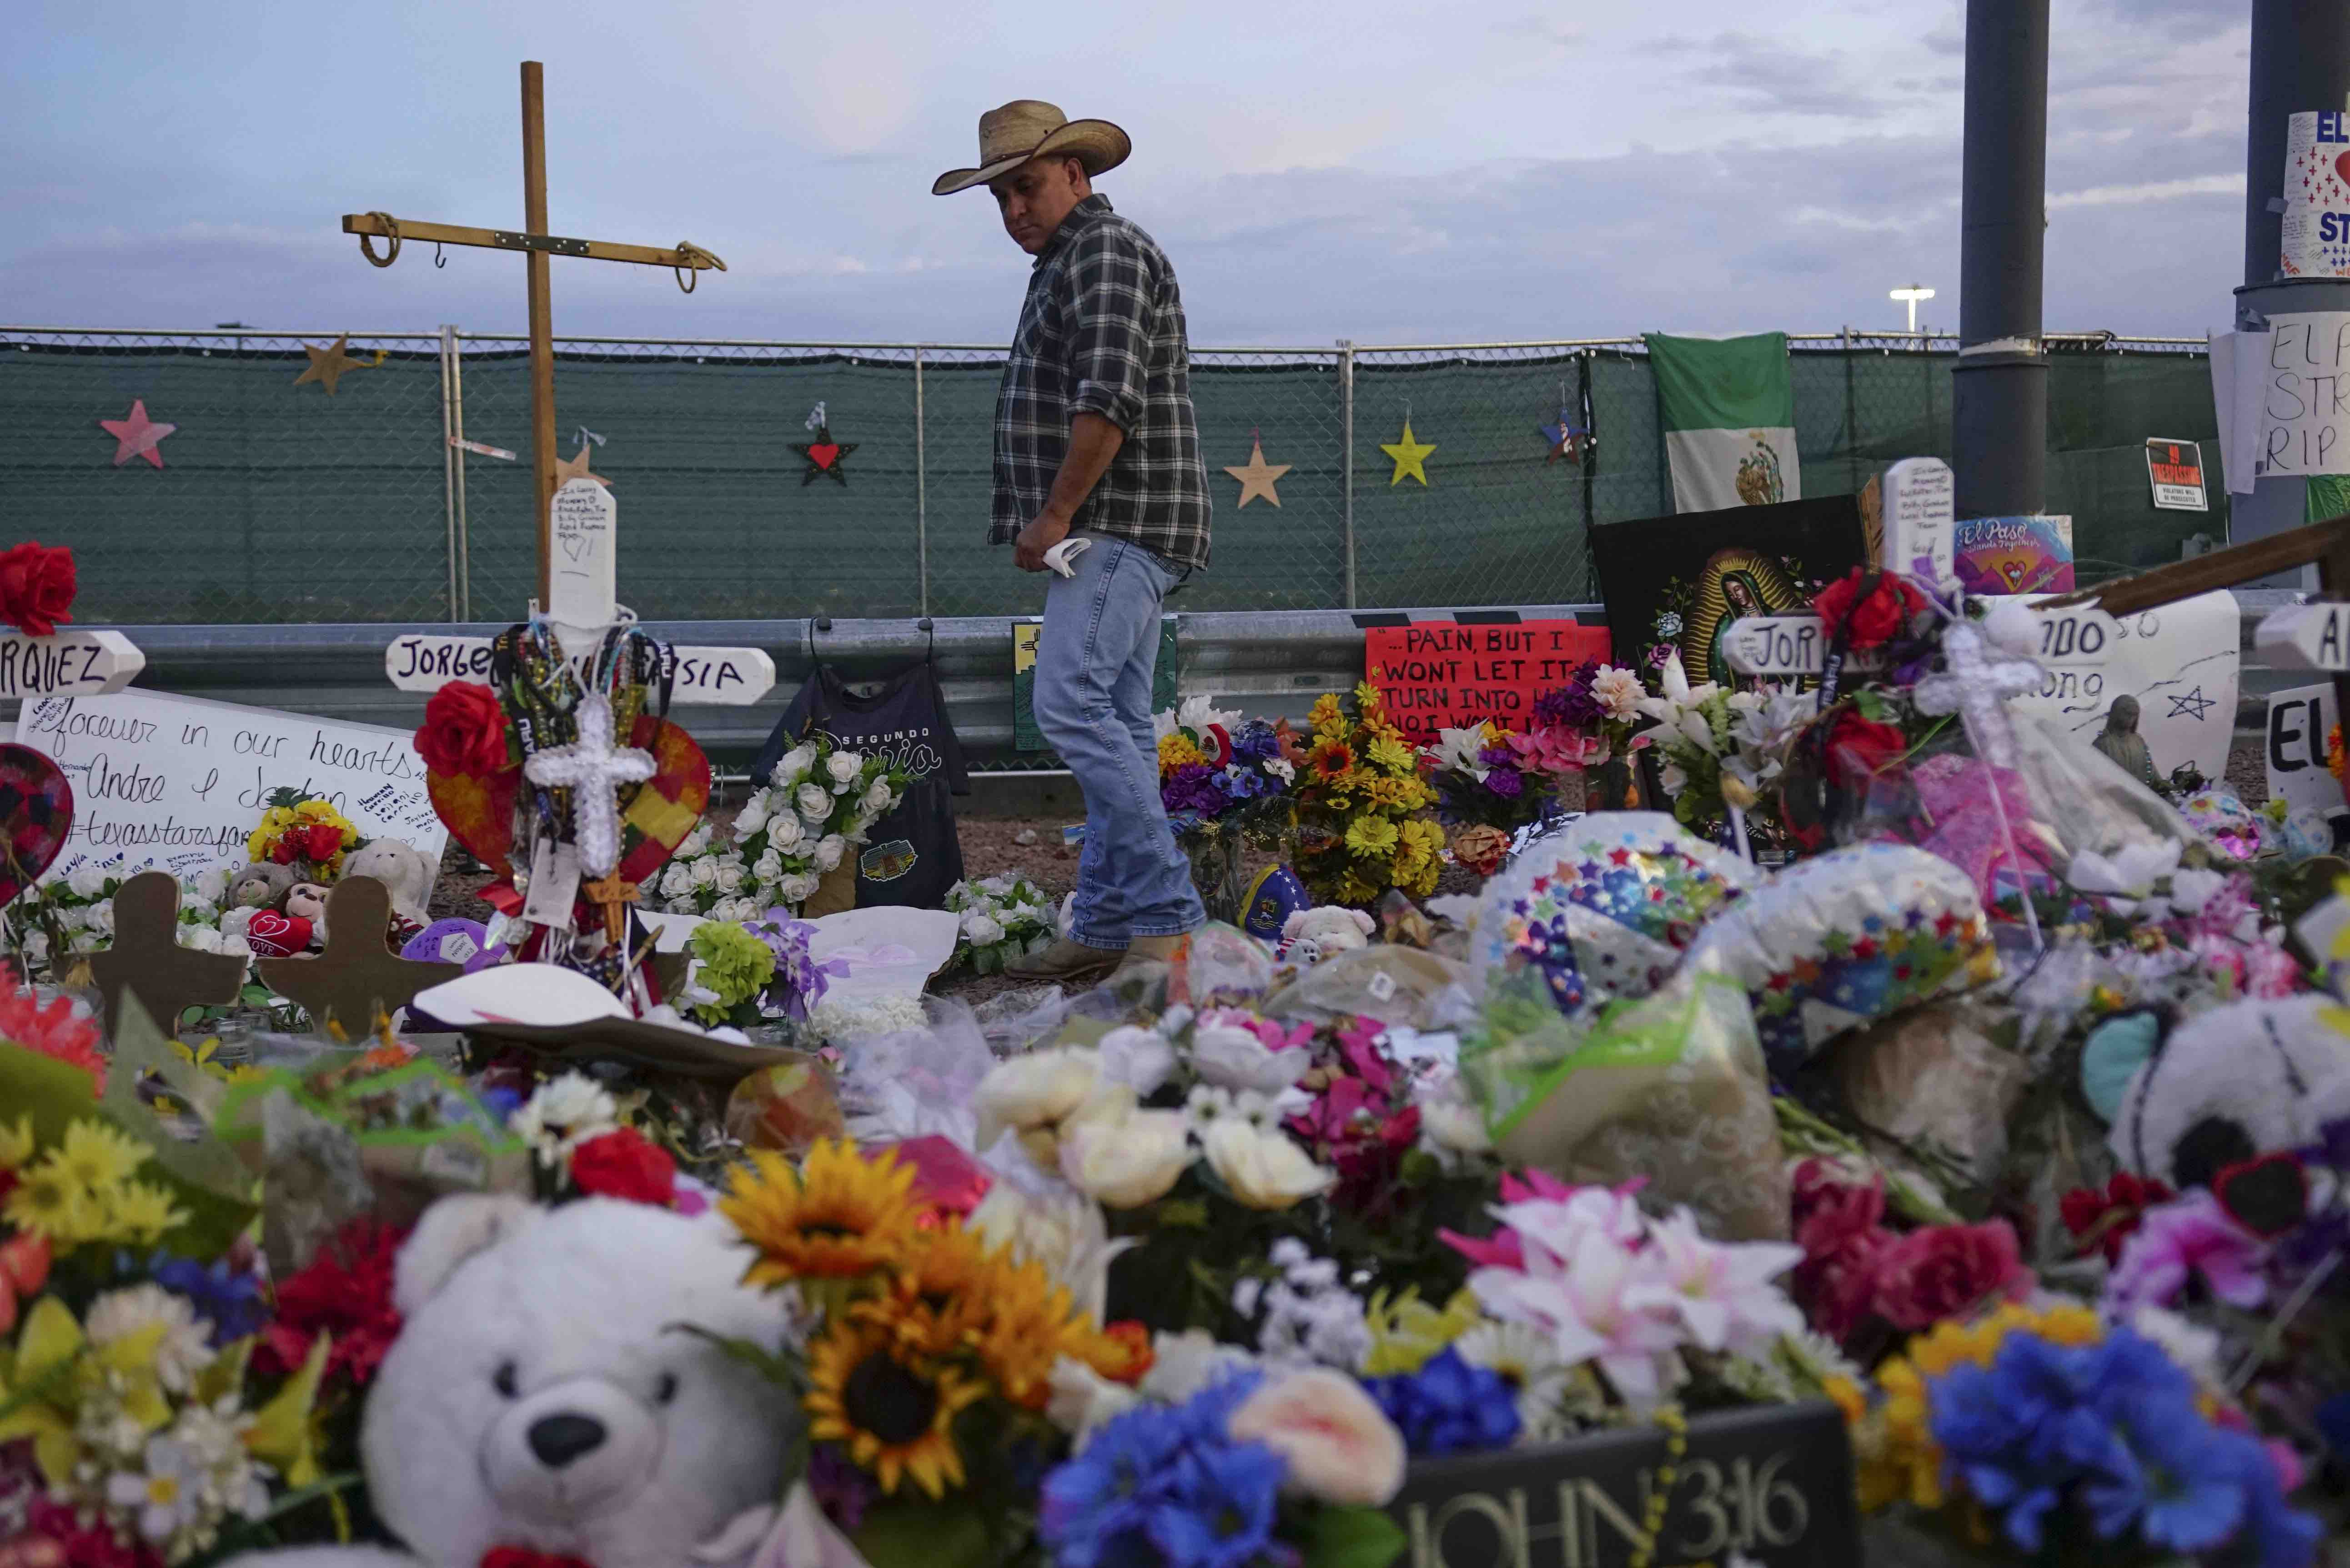 Edward James Olmos & George Lopez Spent Hours Visiting the El Paso Mass Shooting Victims